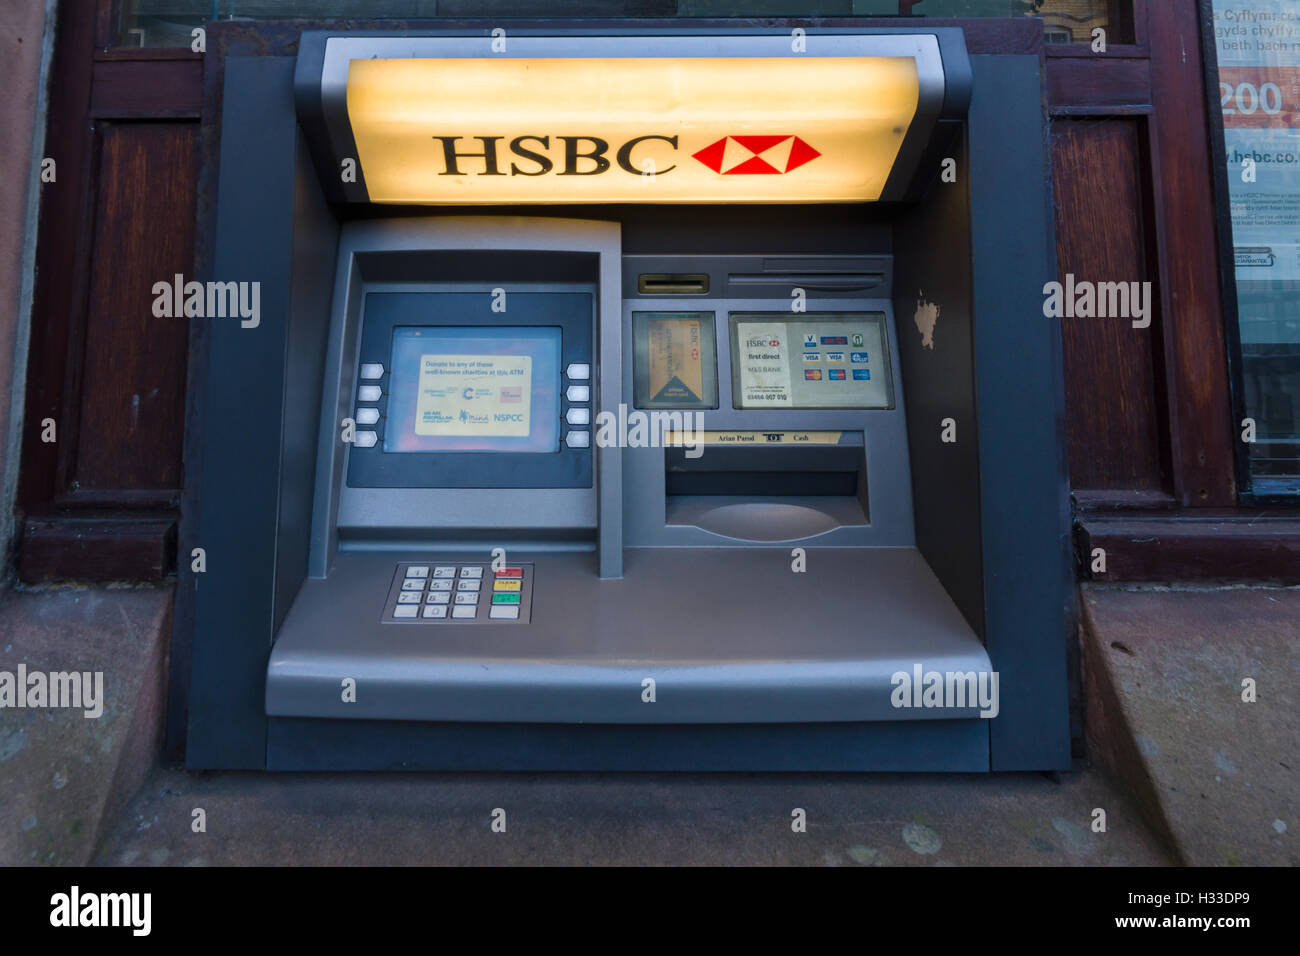 HSBC cash machine or ATM in the Welsh town of Bala one of the few remaining rural ATM's as the major banks withdraw - Stock Image